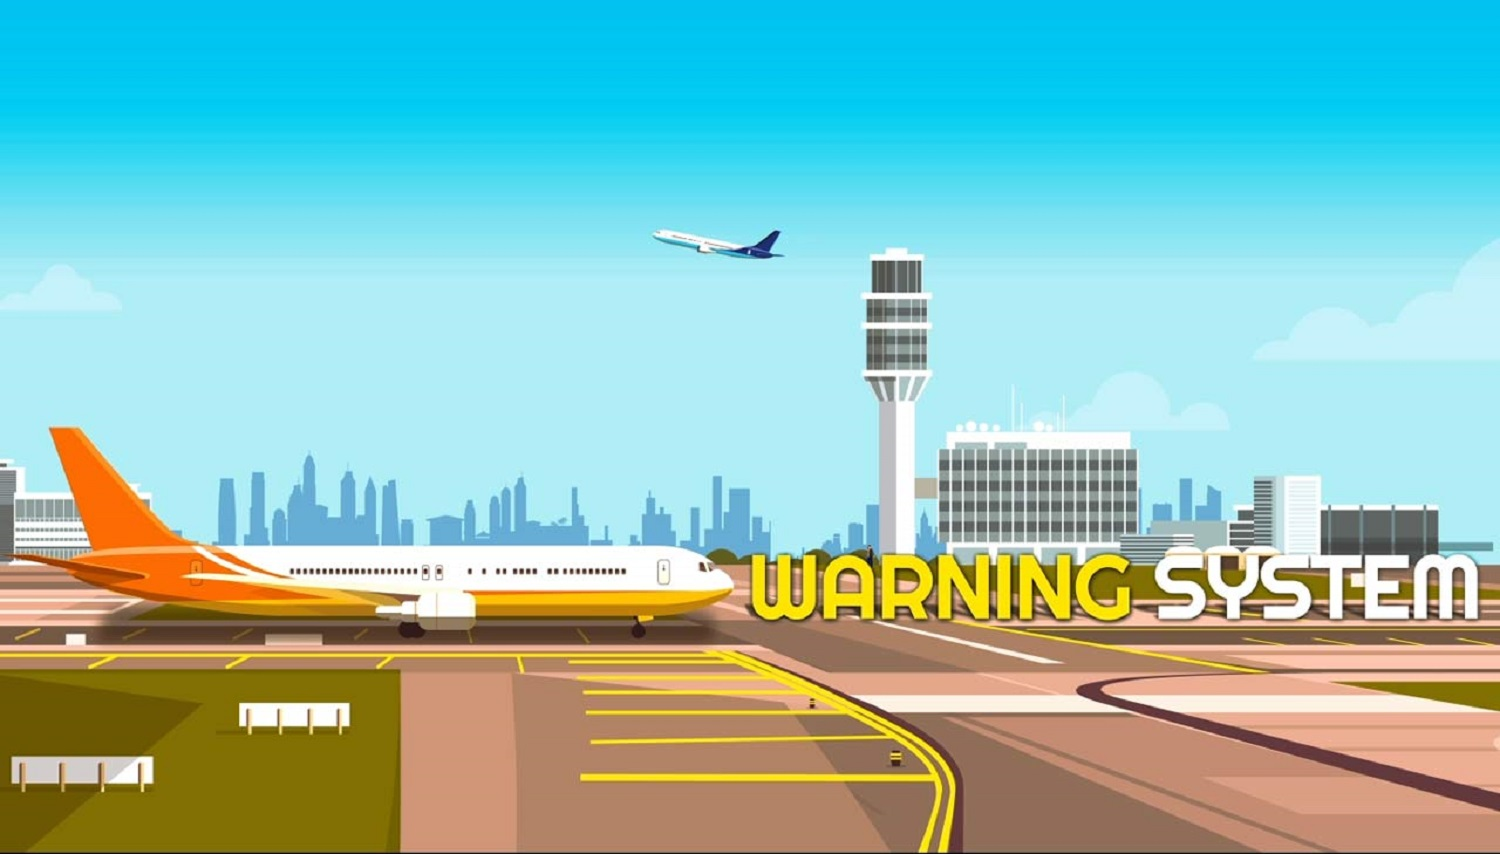 Mass warning systems for airports